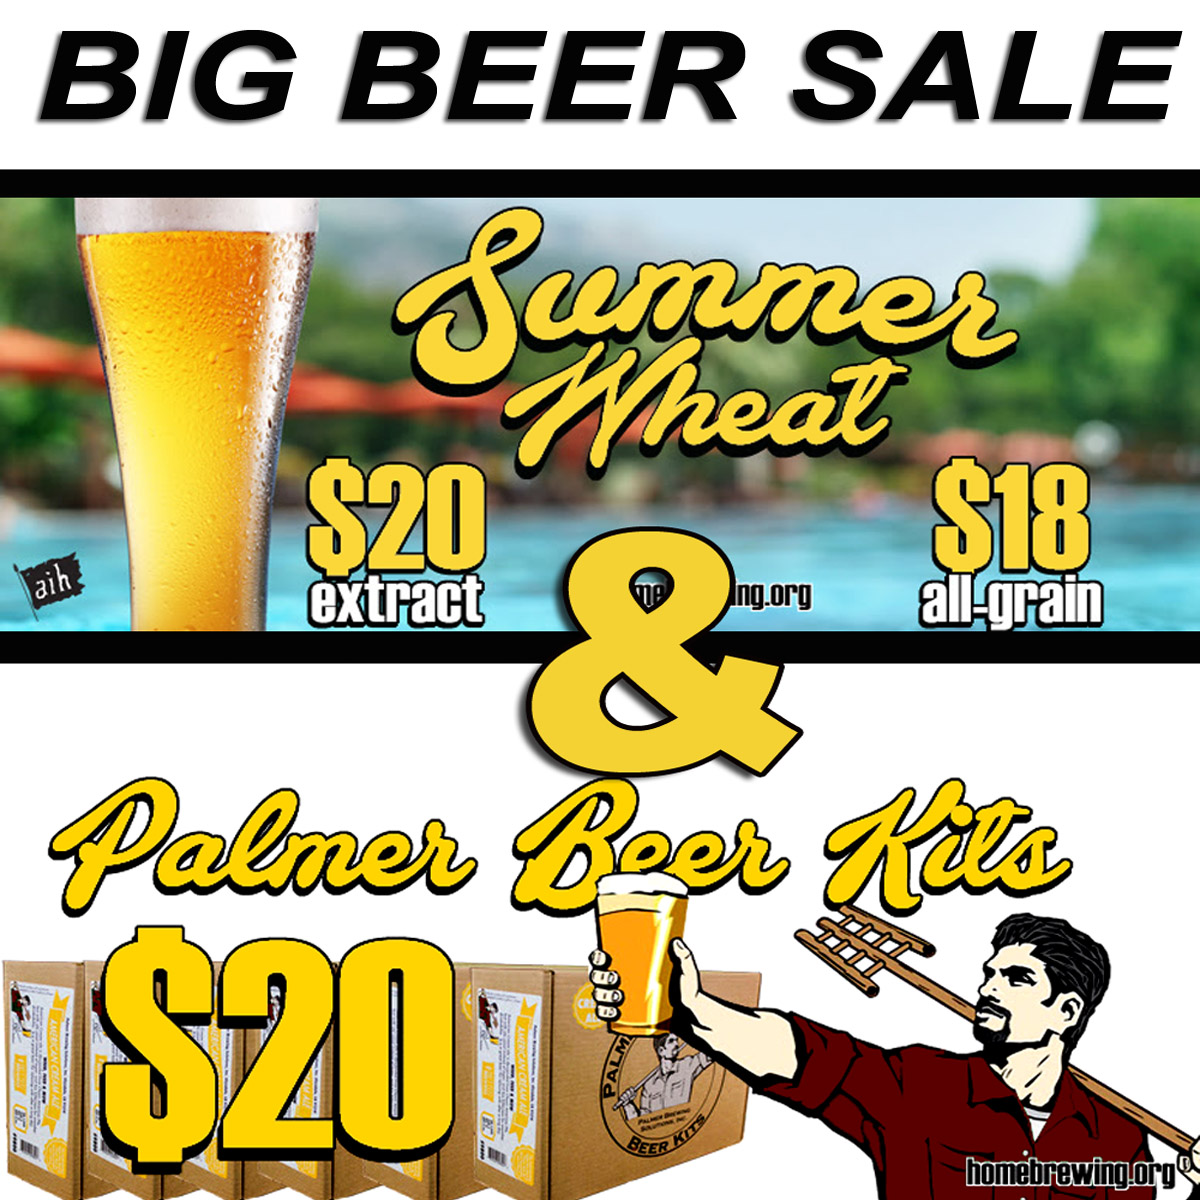 graphic regarding Beer Coupons Printable known as Beer discount codes and beer personal savings - Minka aire discount coupons